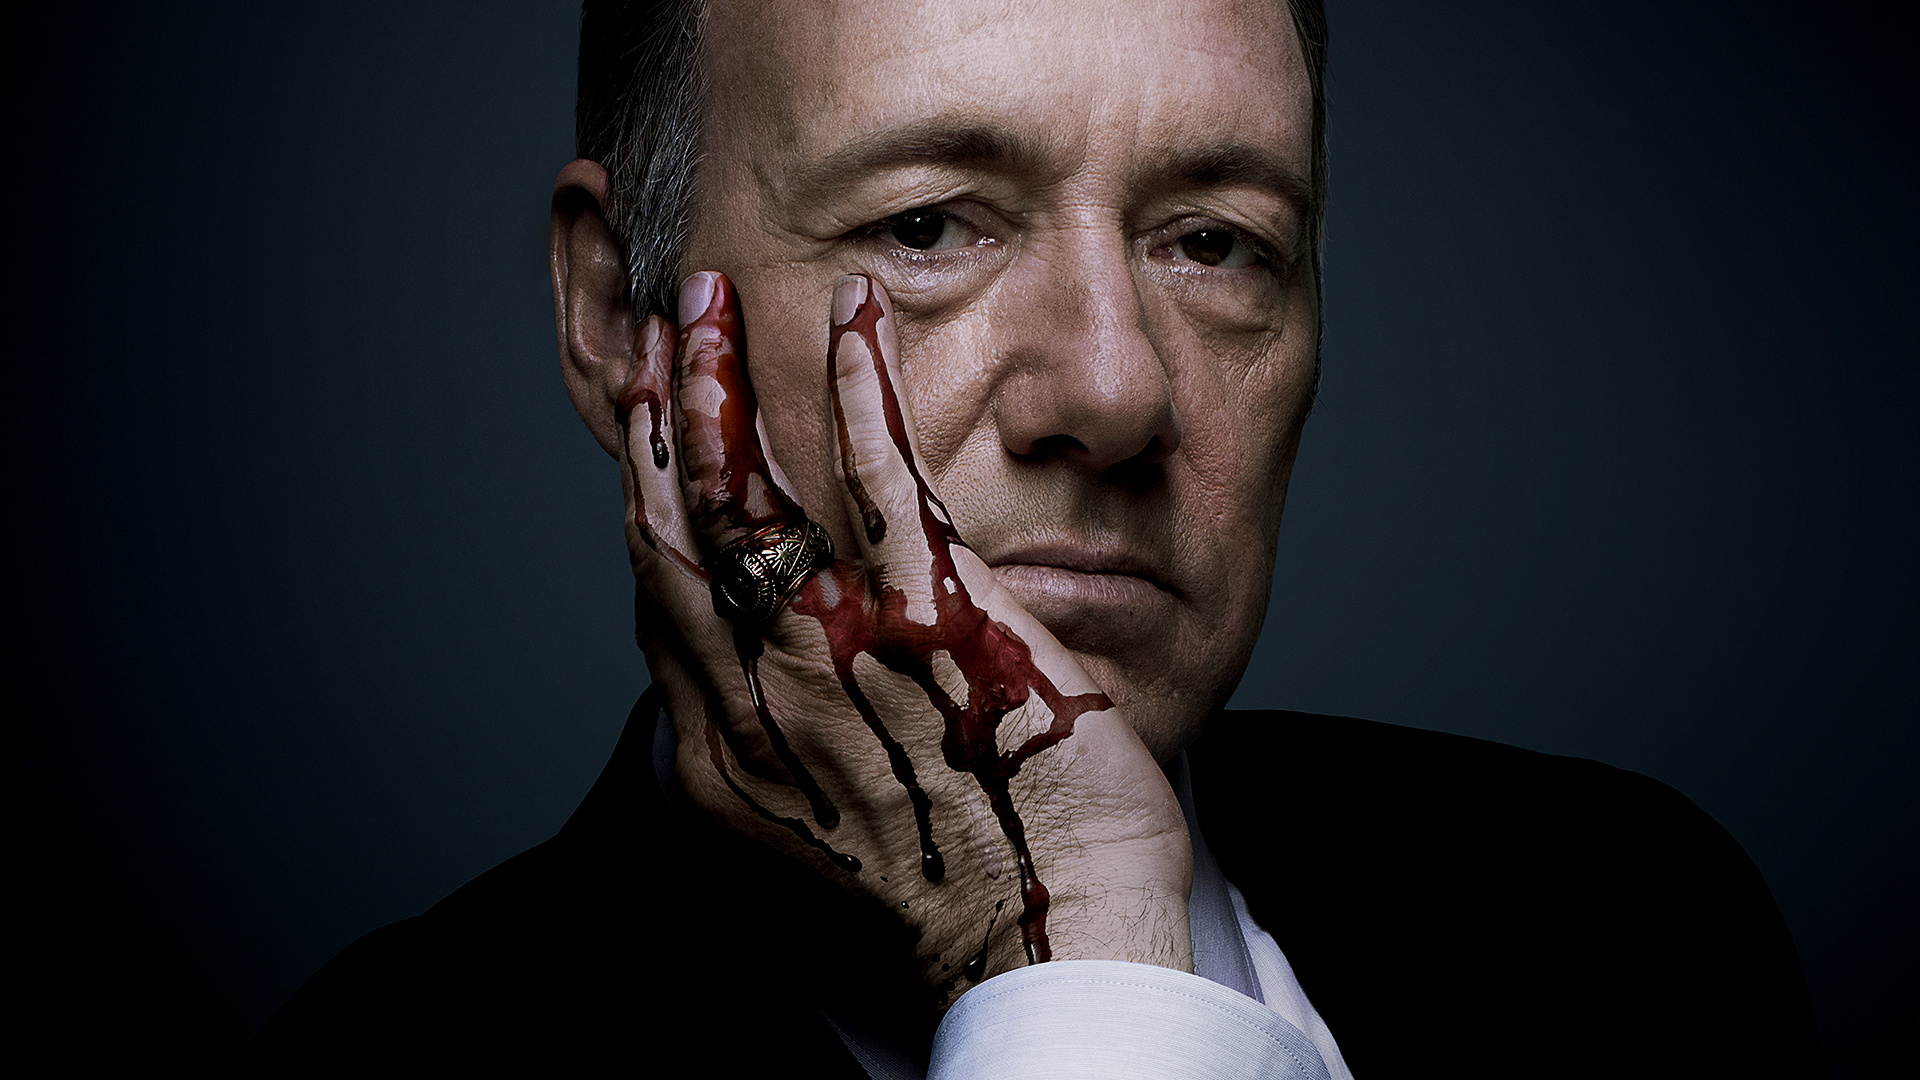 Watch: House of Cards Official Season 3 Trailer